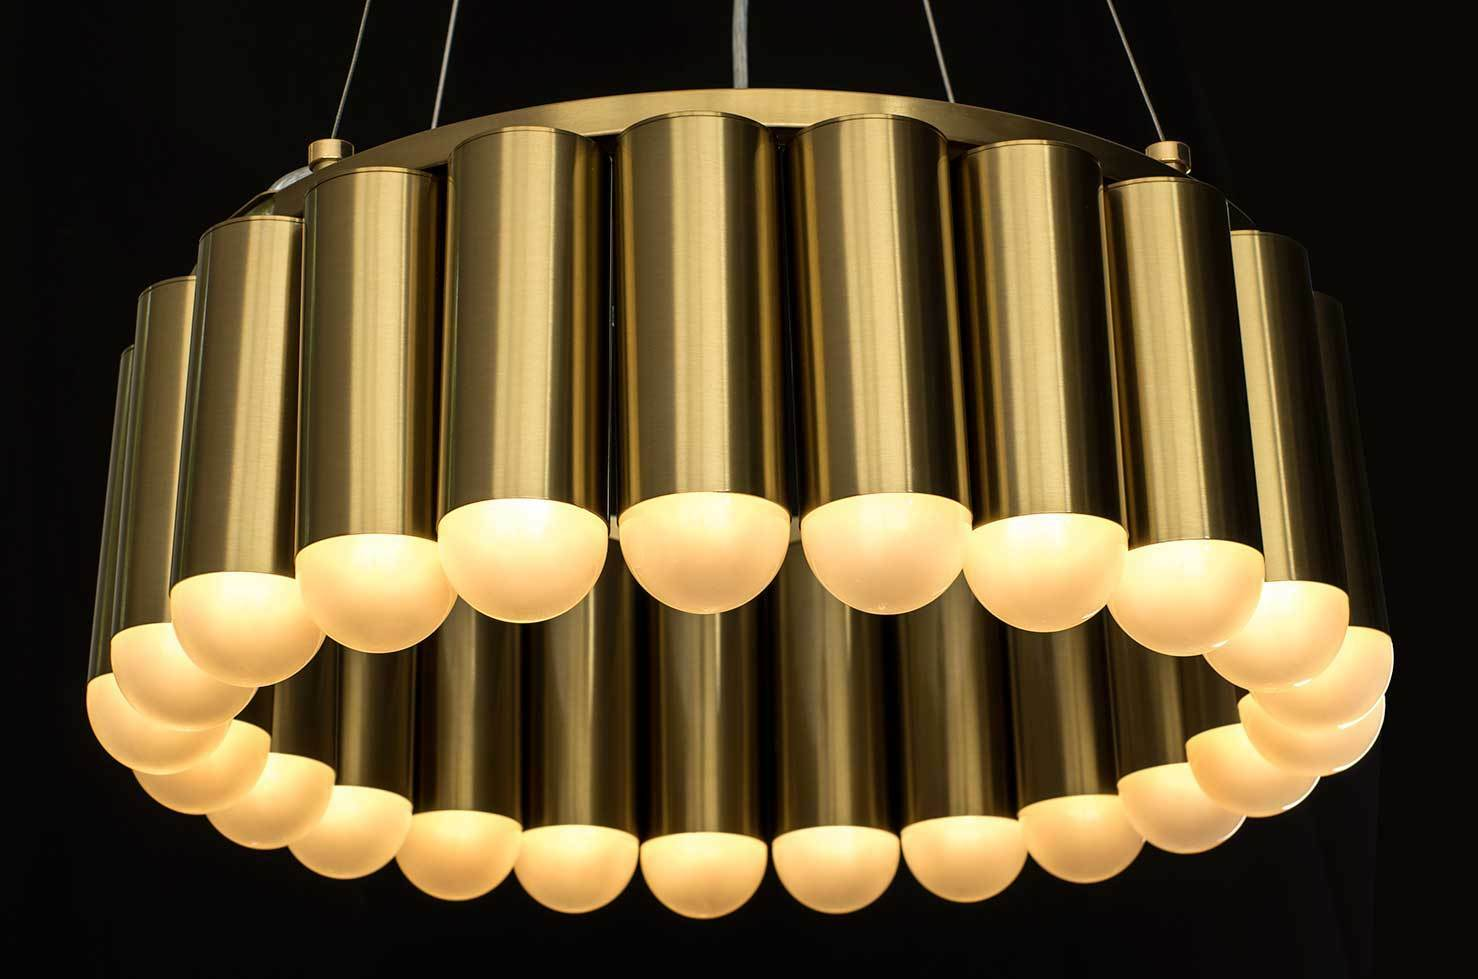 Stunning brass chandelier with 23 LED lights inspirot by Lee Broom Carousel.